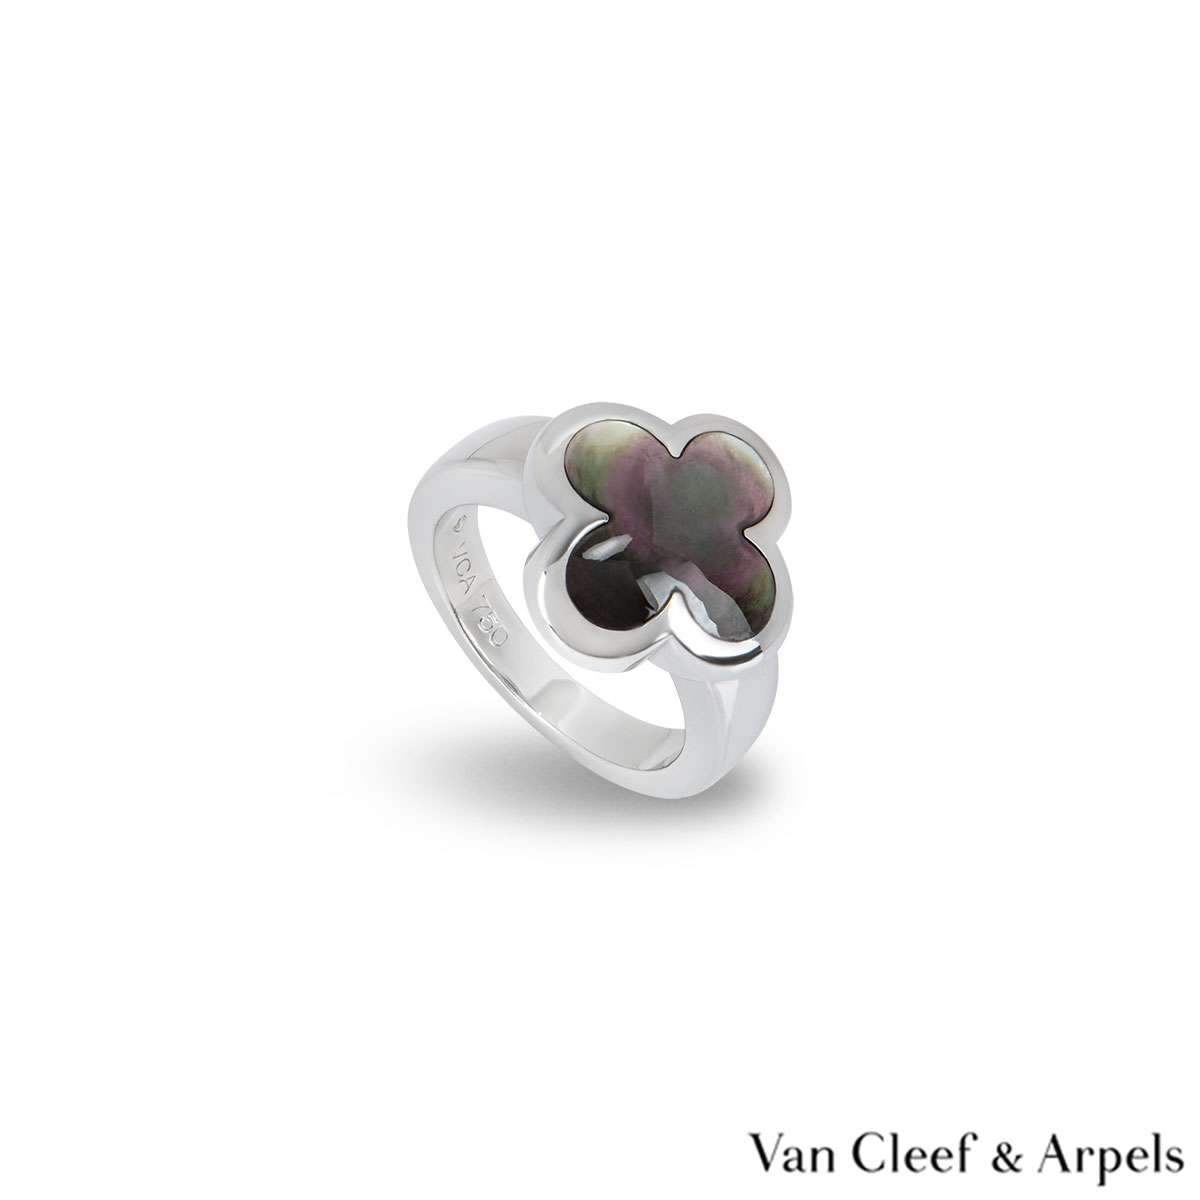 Van Cleef & Arpels White Gold Pure Alhambra Ring